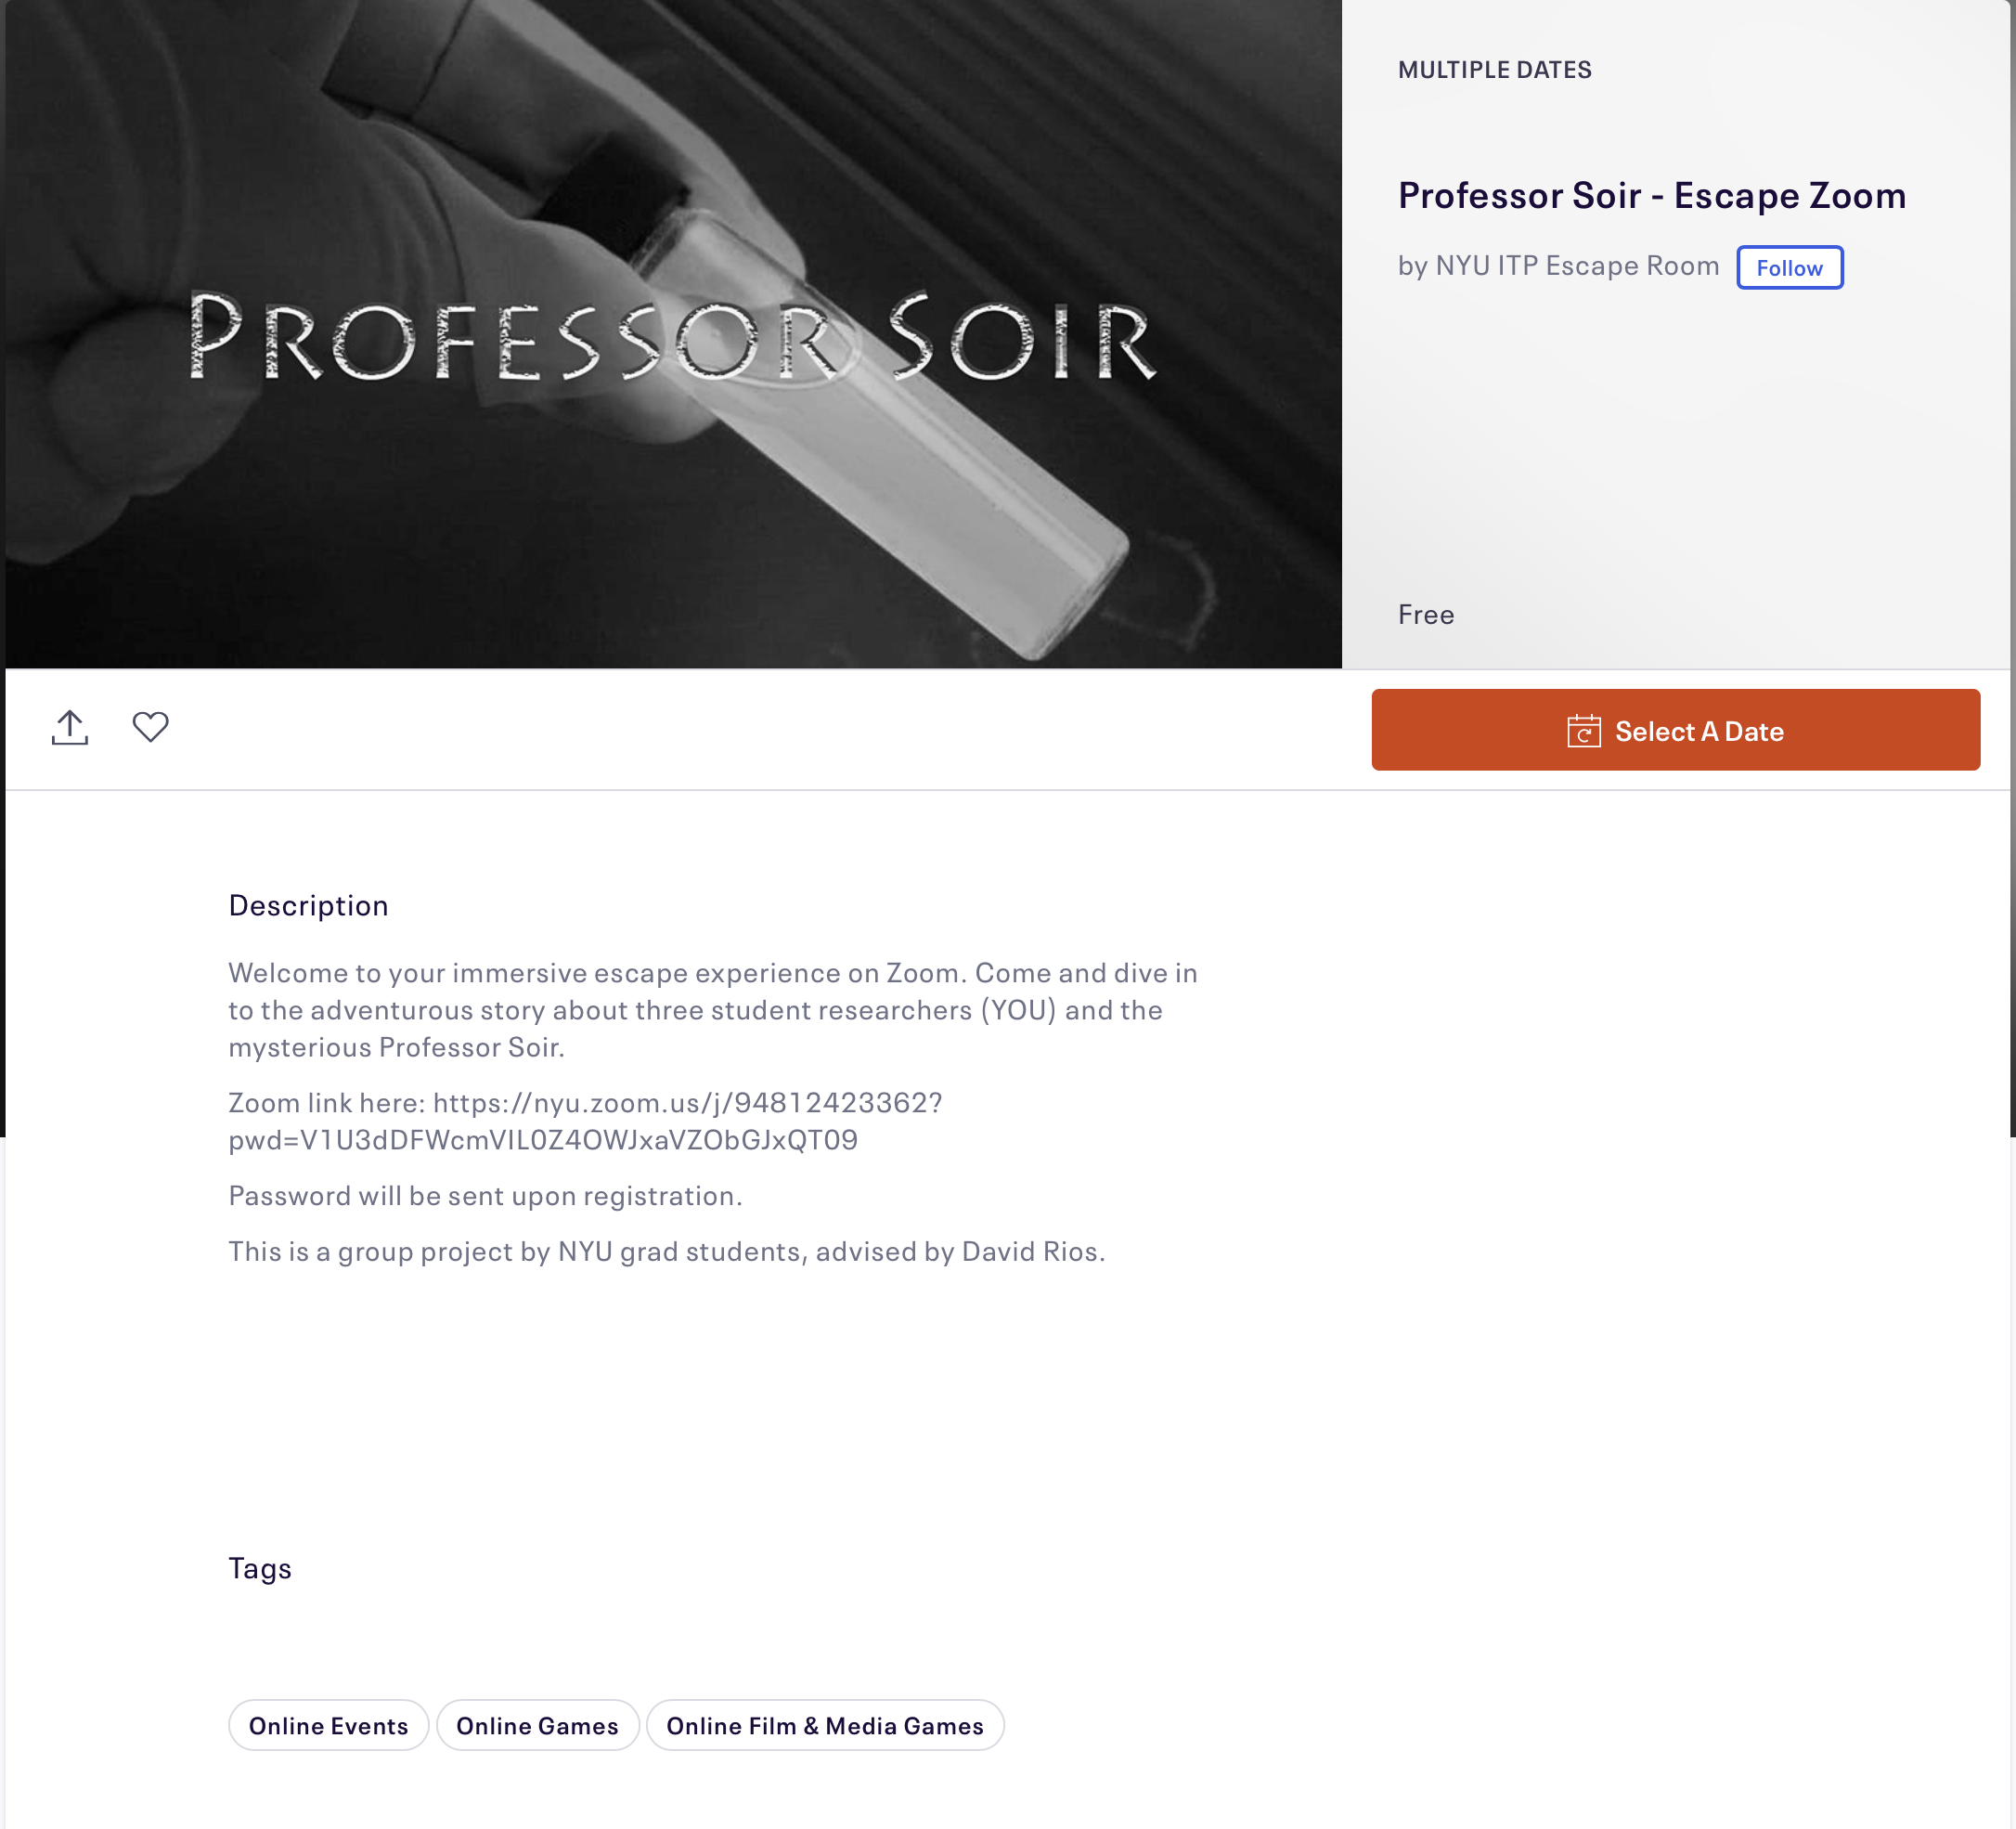 Eventbrite Listing for Professor Soir's Escape Zoom